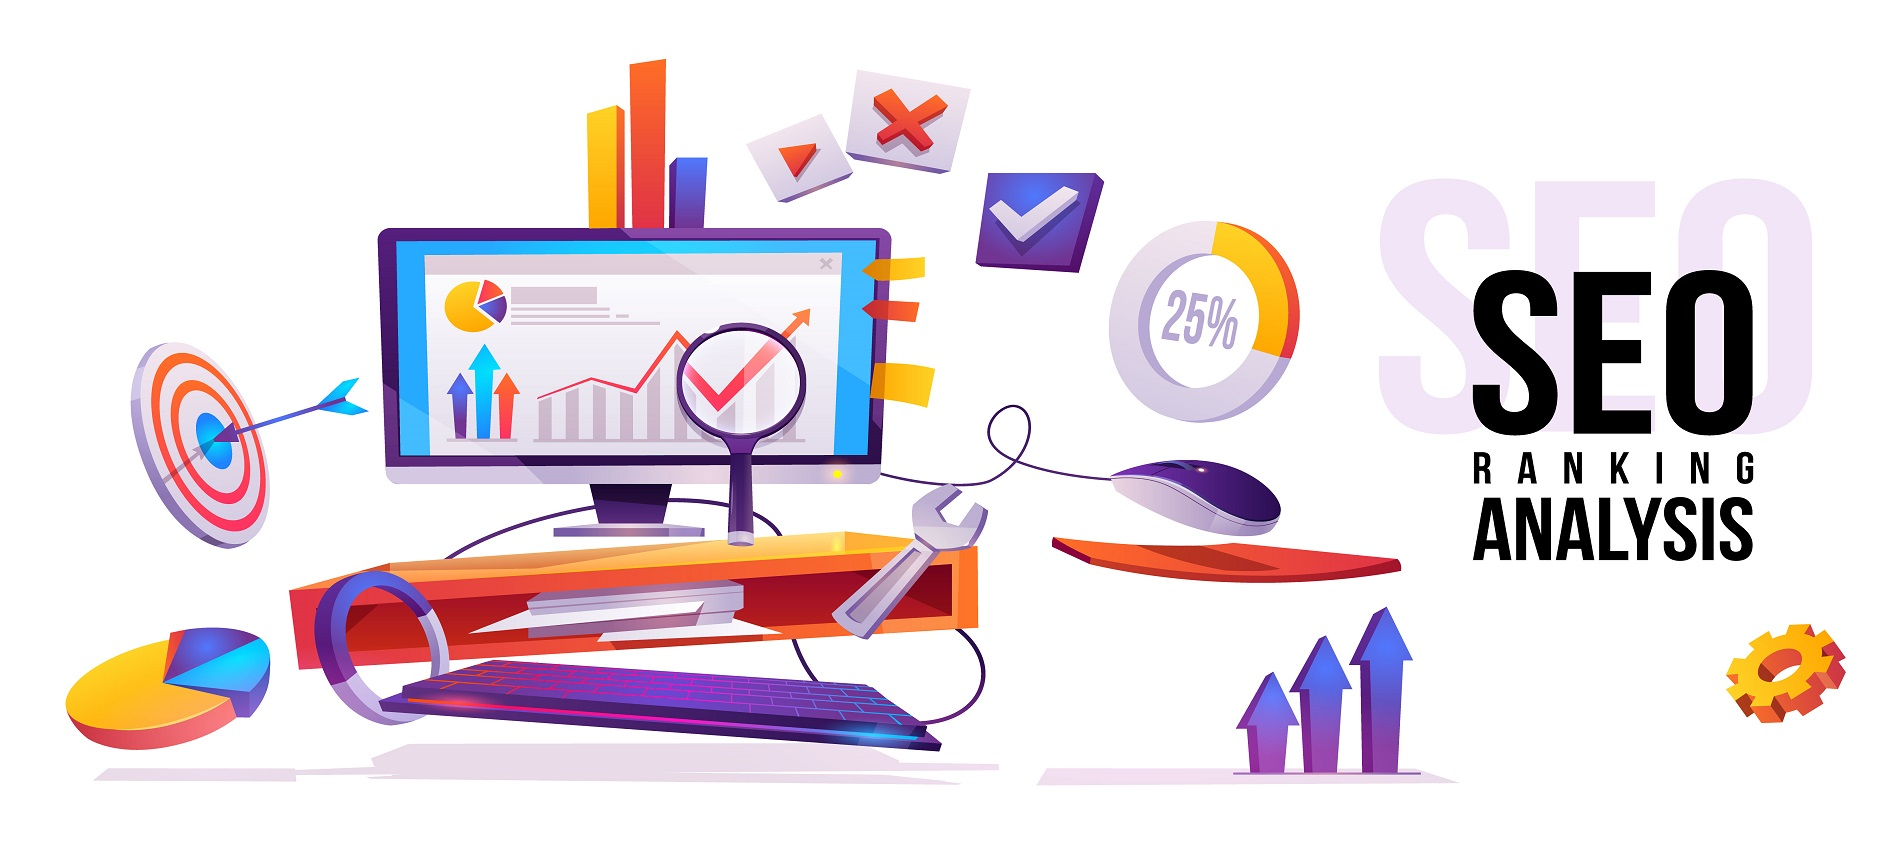 SEO Best Practices To Generate More B2B Leads